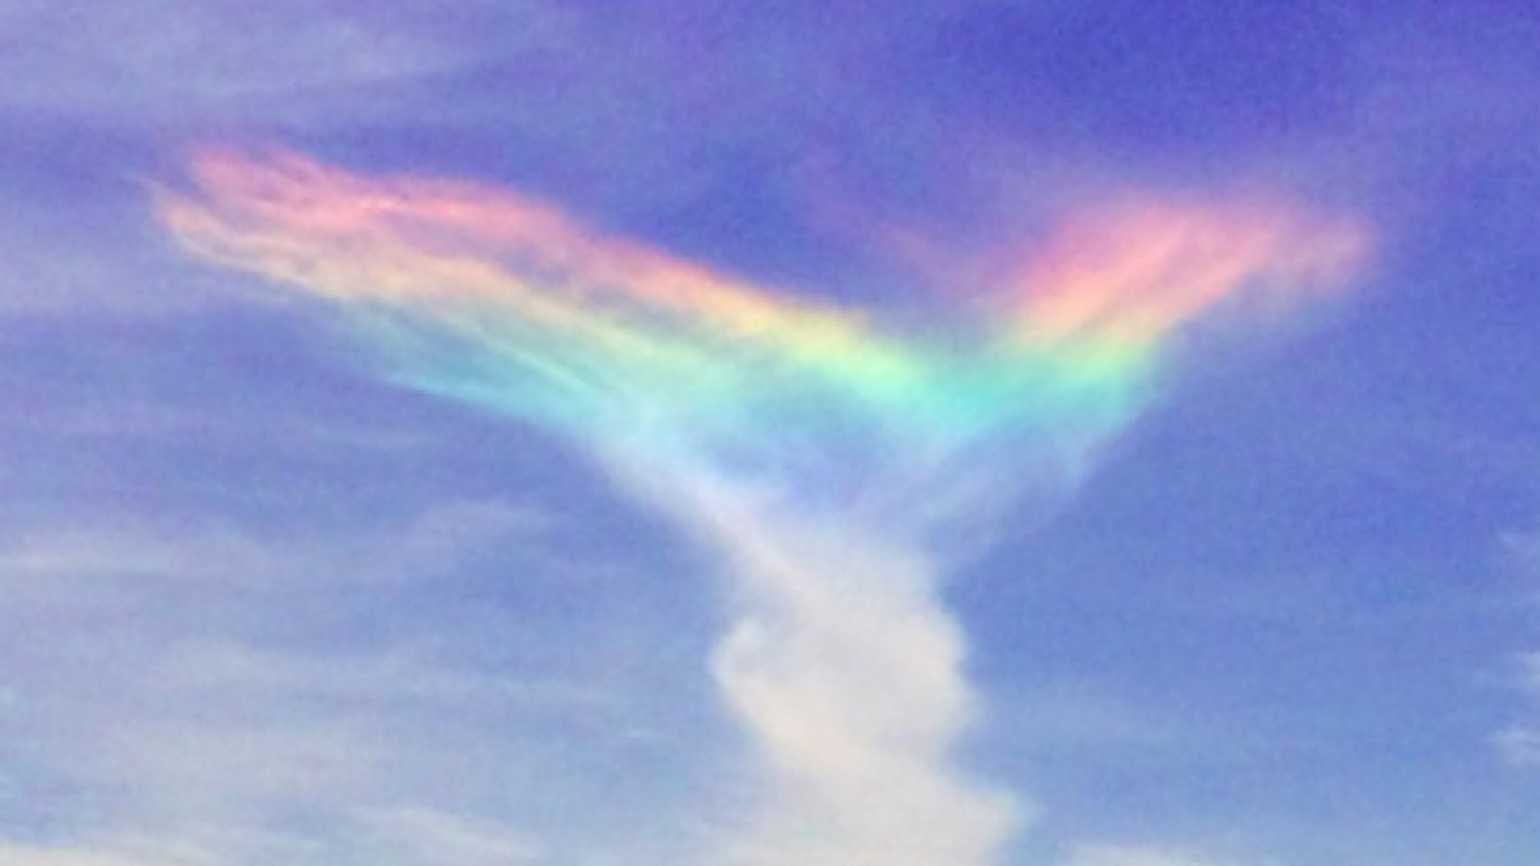 God paints the sky with this rare recently spotted fire rainbow.